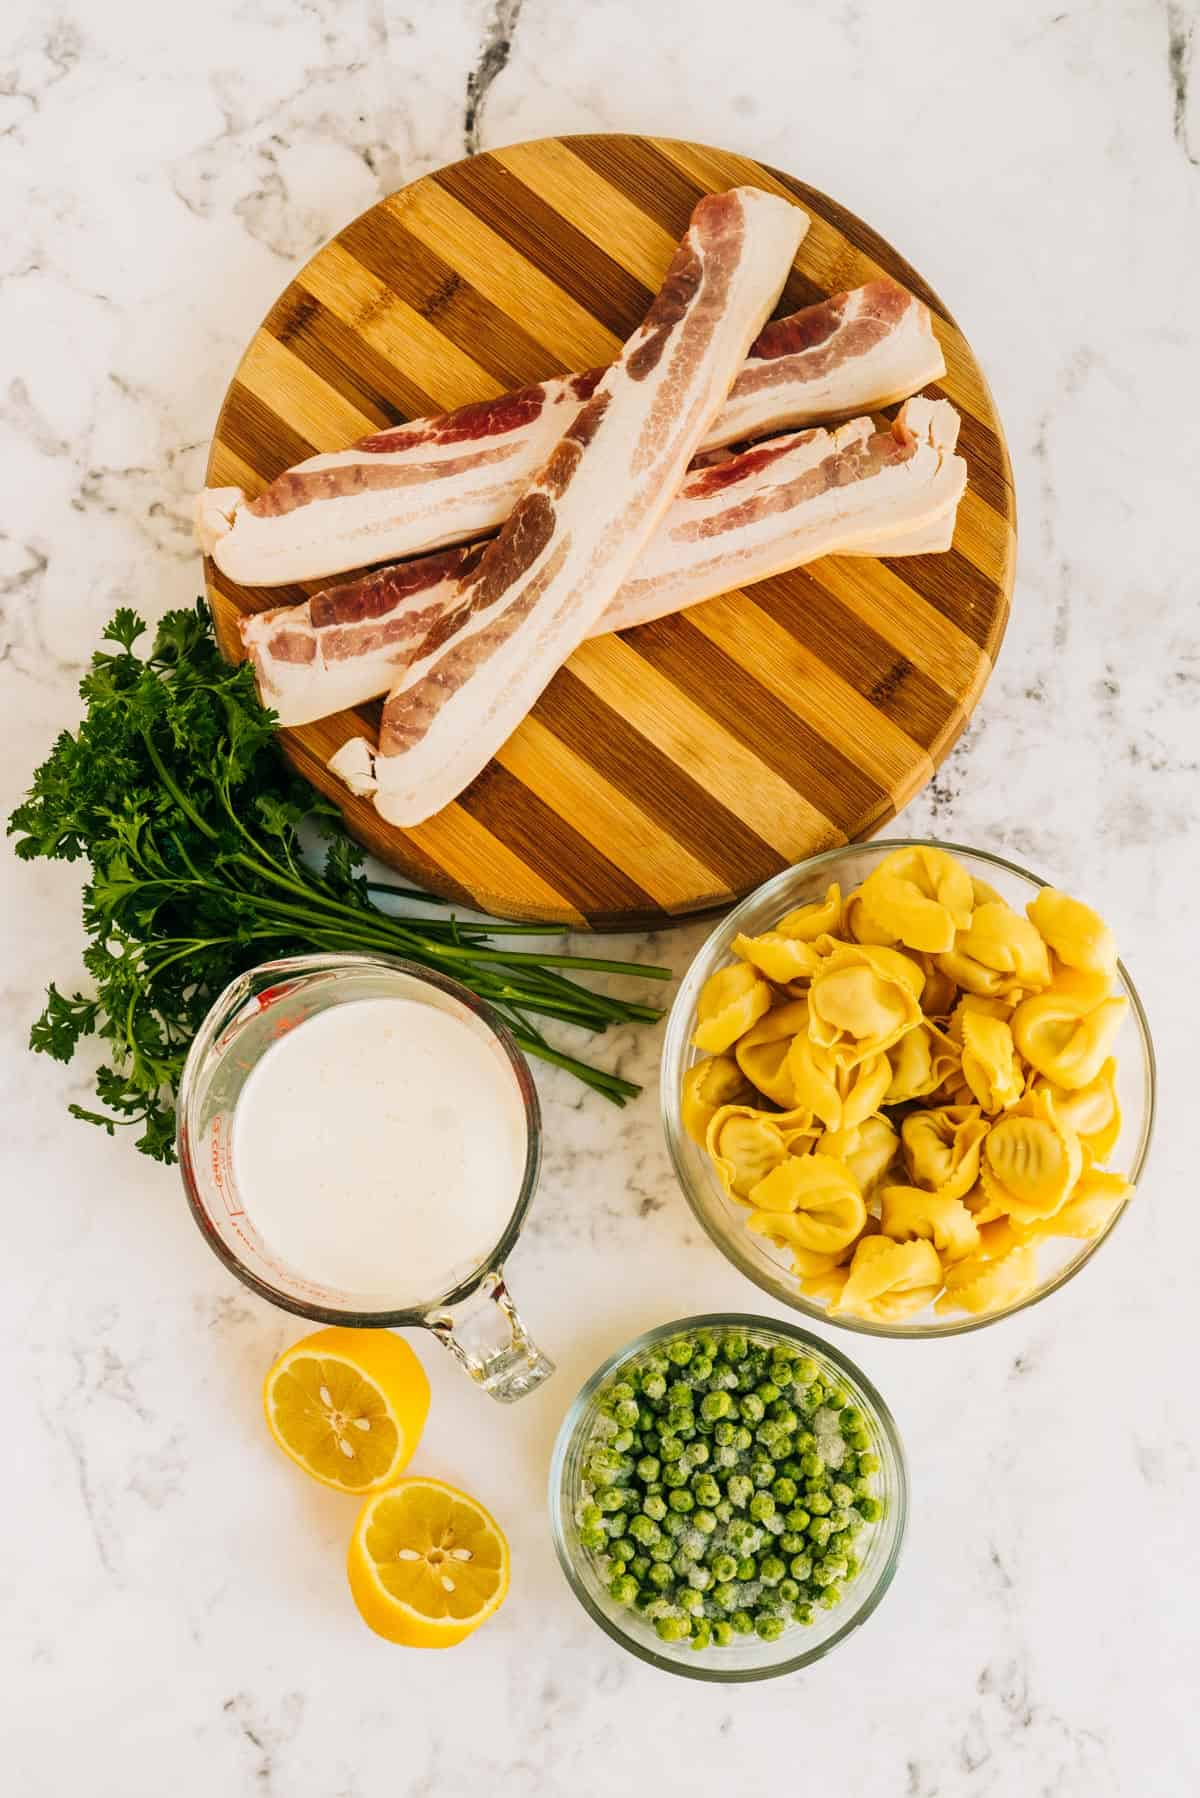 Overhead view of ingredients needed for bacon carbonara